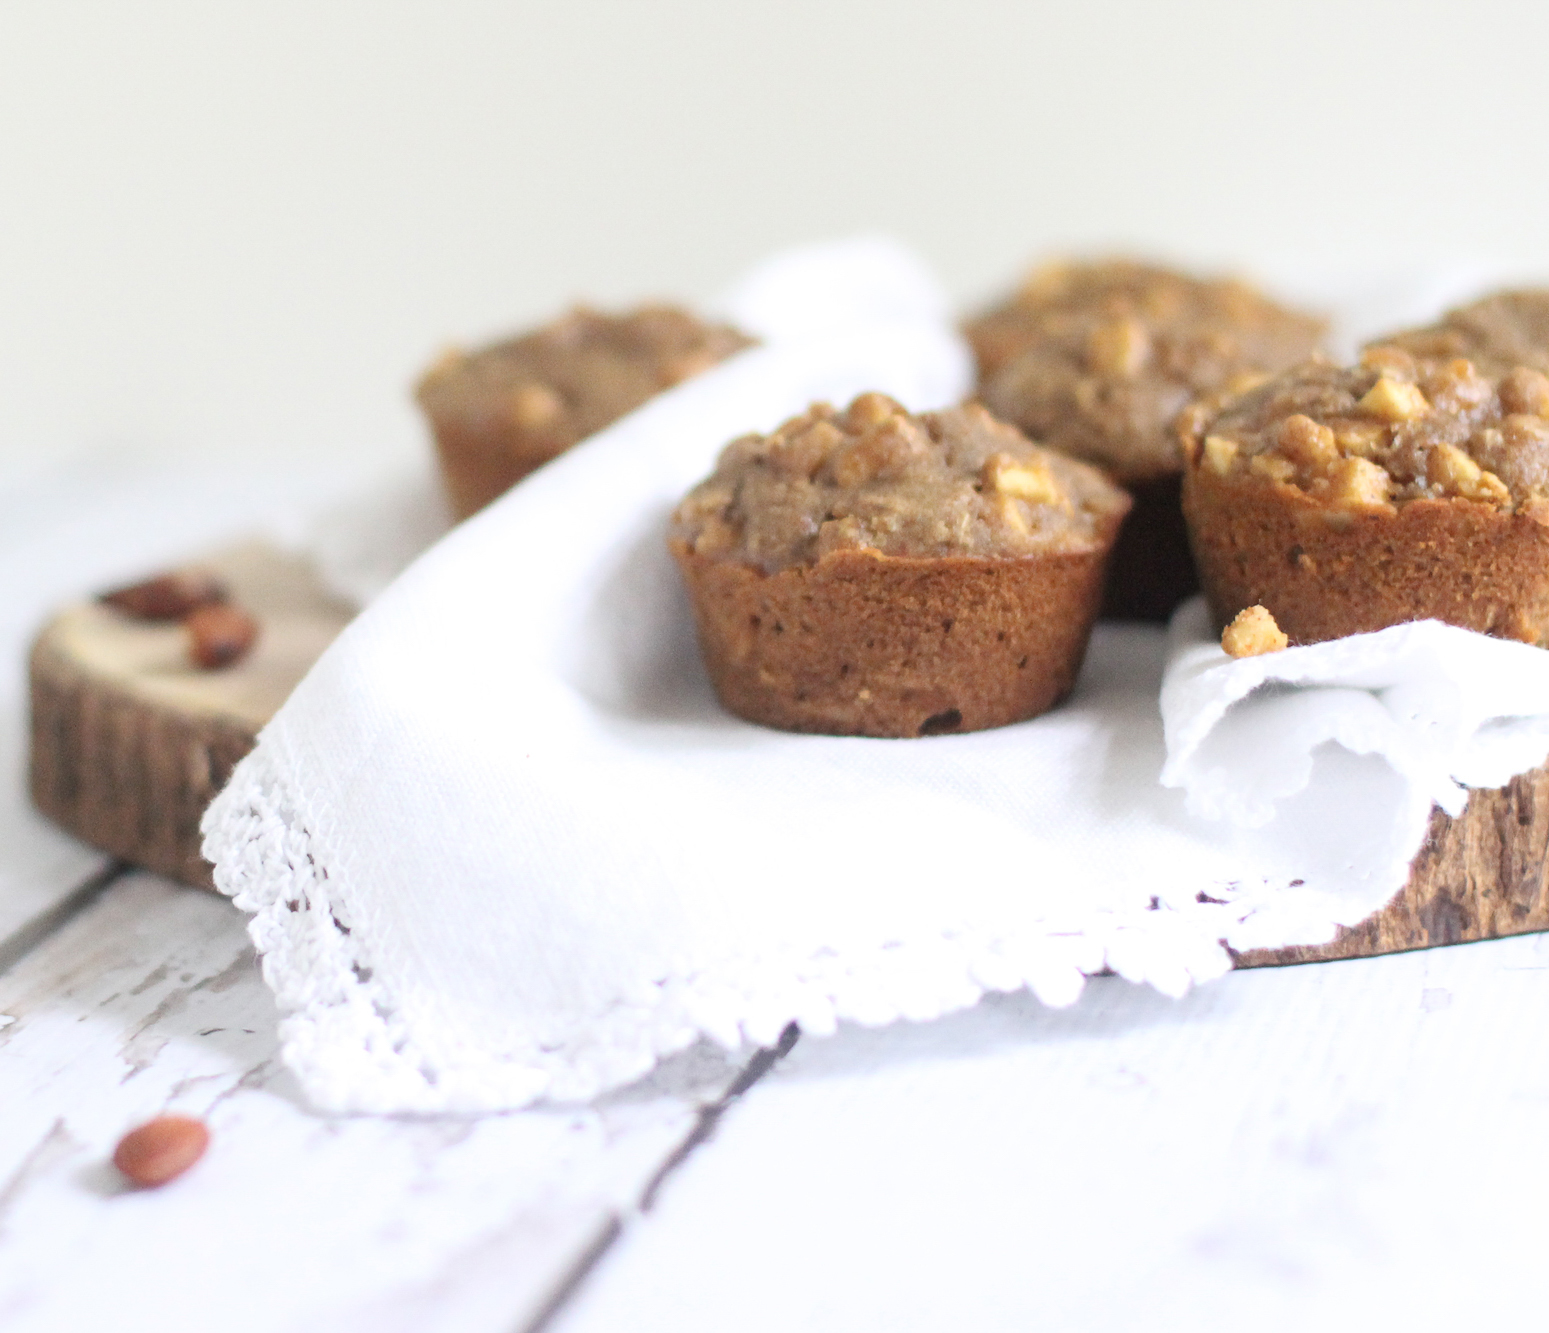 Gluten-Free Apple Cinnamon and Almond Muffins